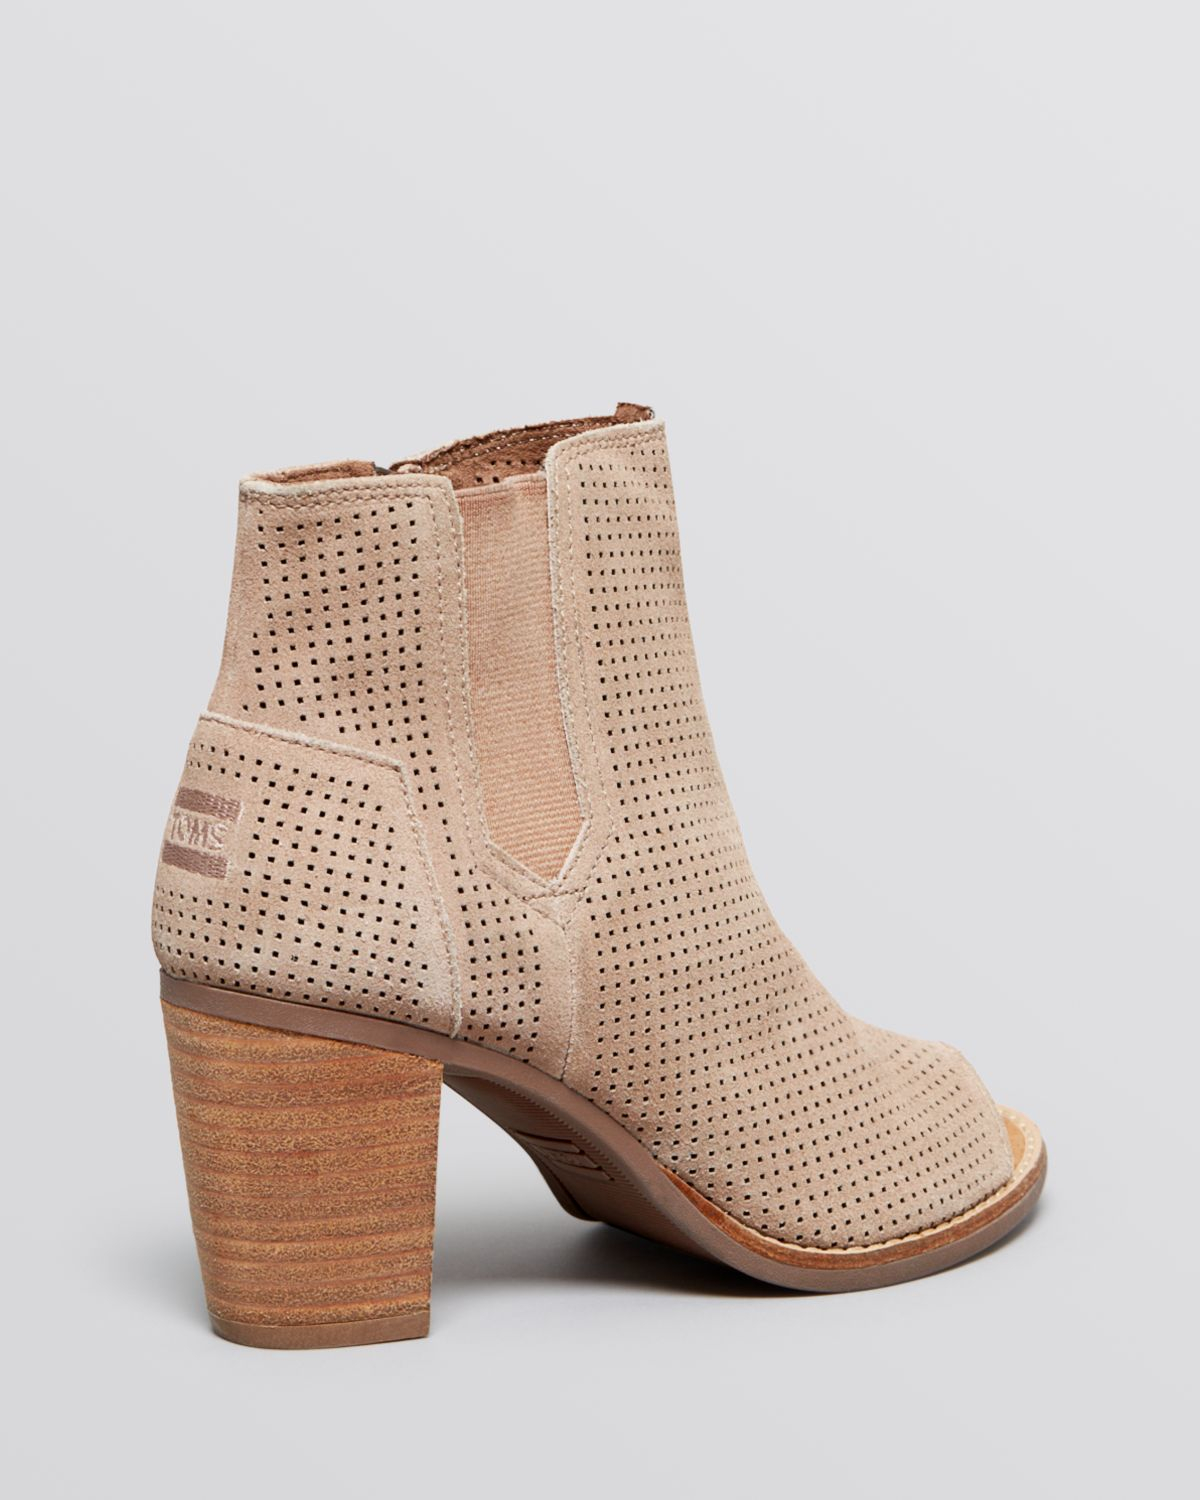 Lyst Toms Open Toe Perforated Booties Majorca In Brown